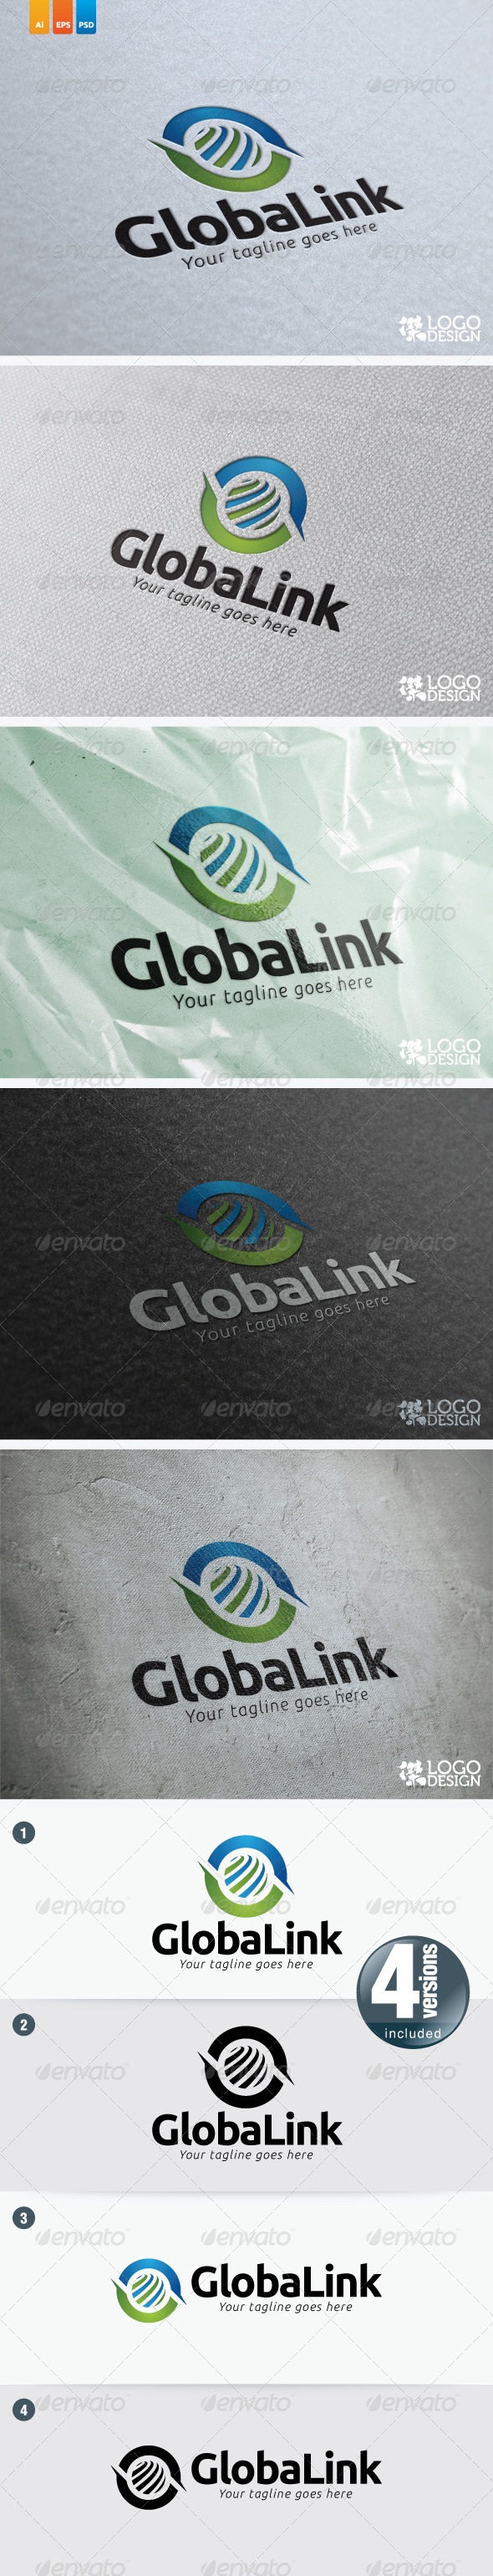 GlobaLink - Vector Abstract